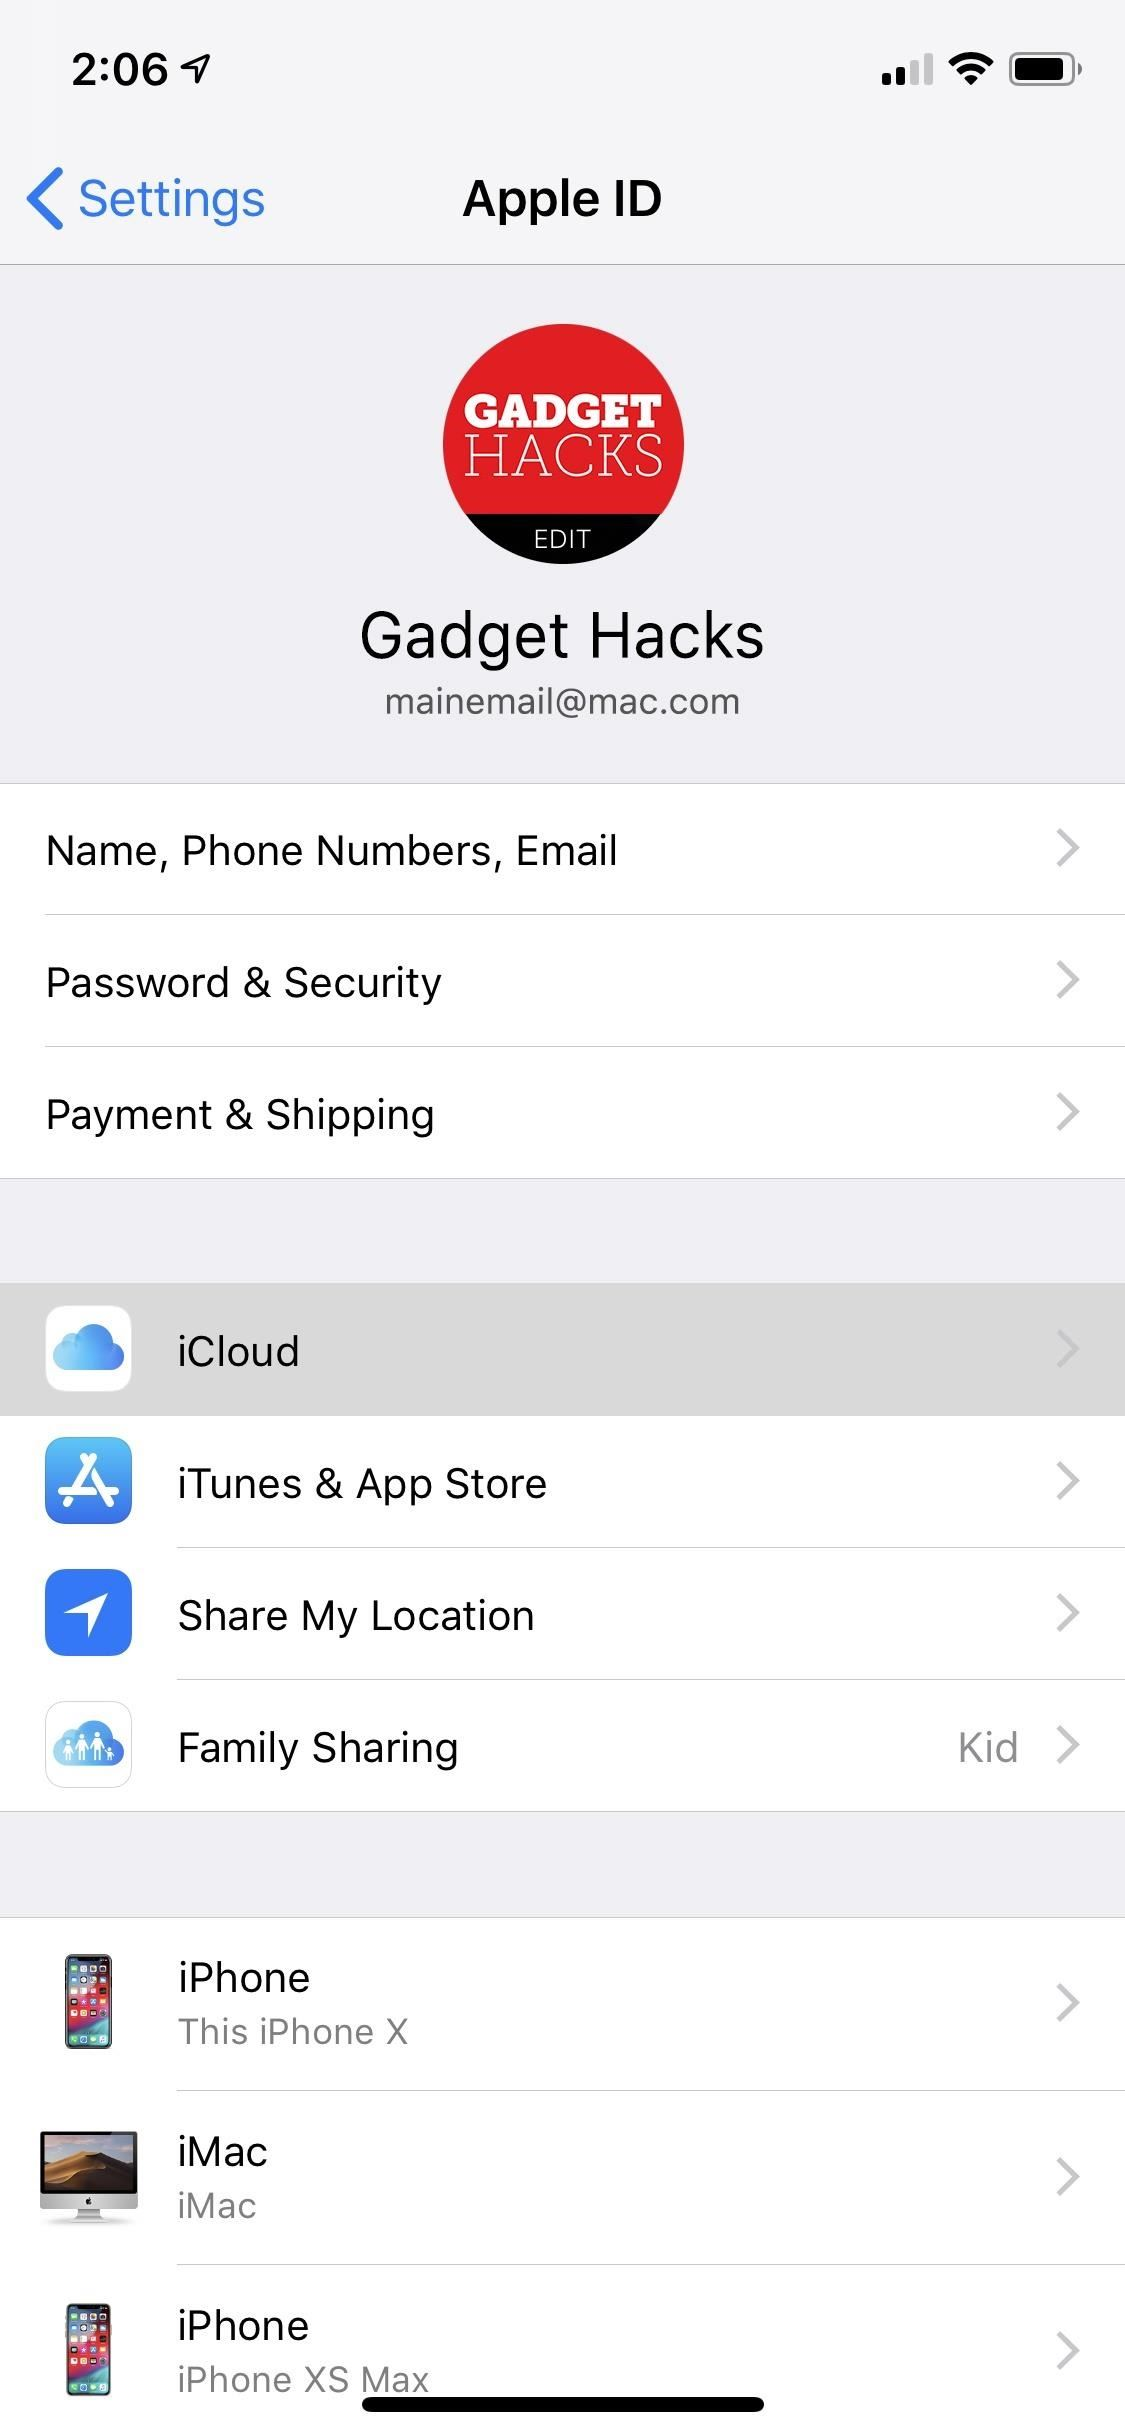 How to Hide @iCloud, @Me & Custom Aliases from Your Mail App's 'From' Field on Your iPhone